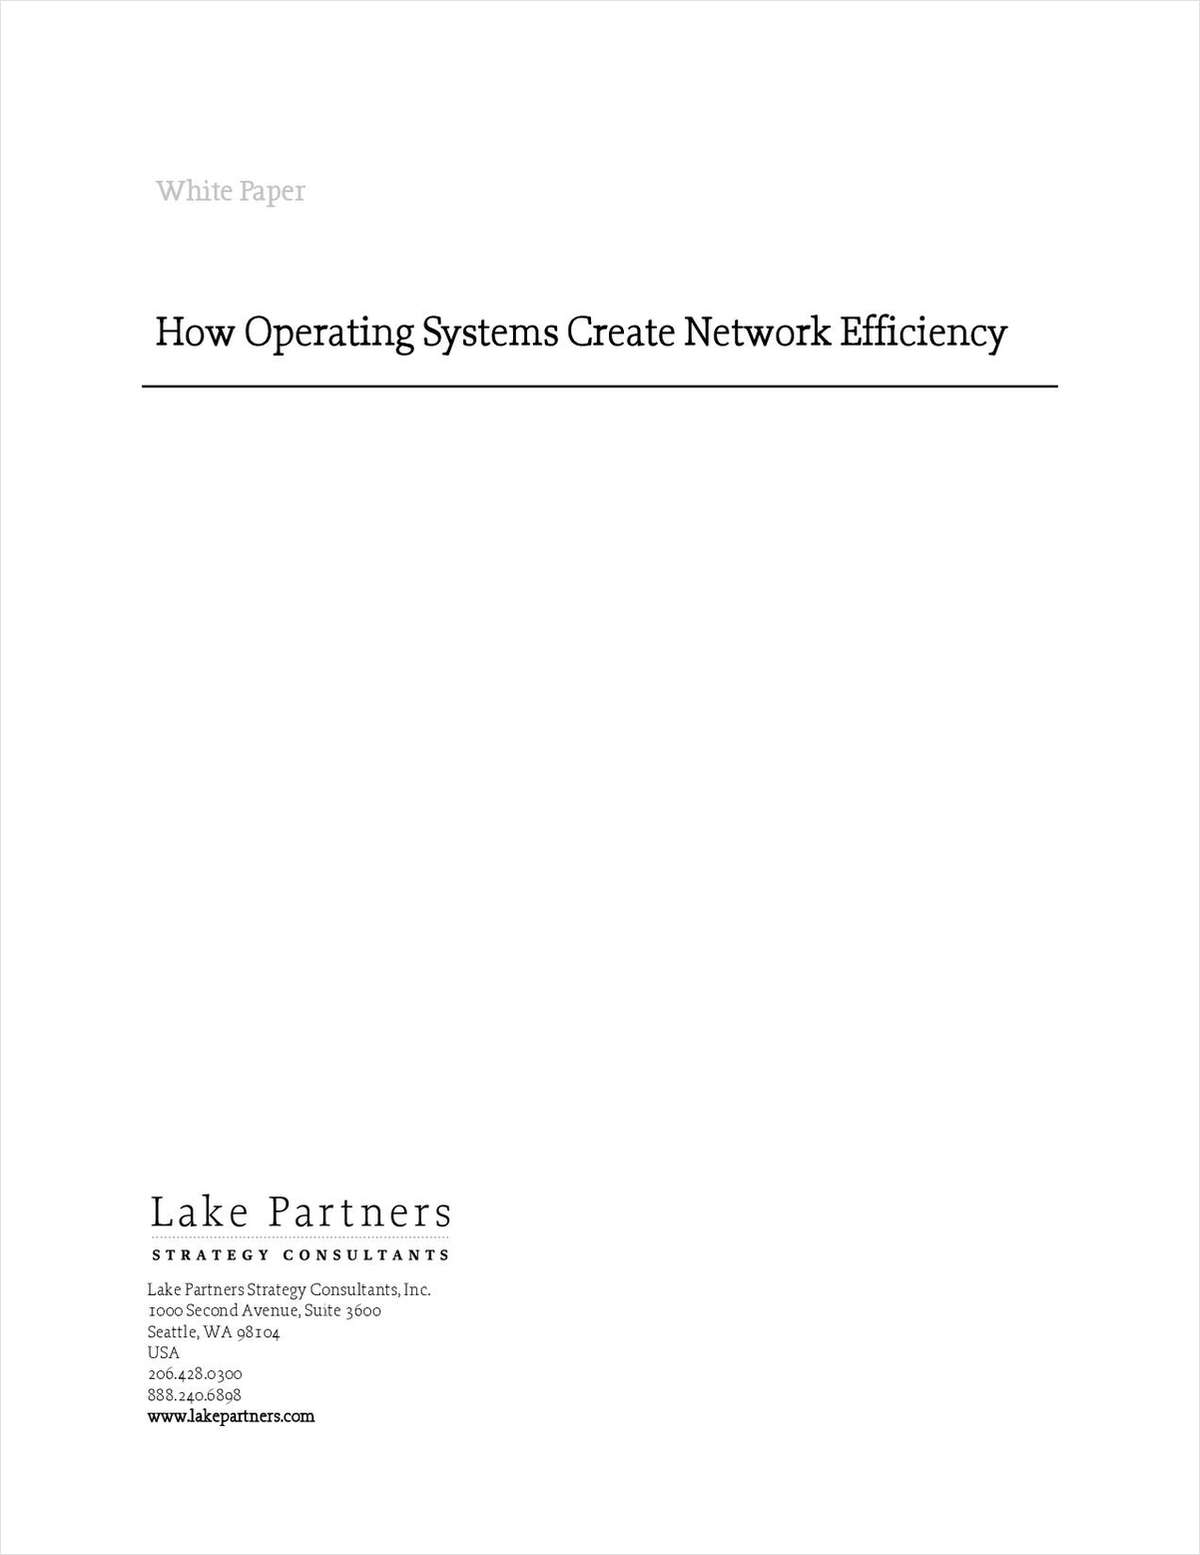 How Operating Systems Create Network Efficiency